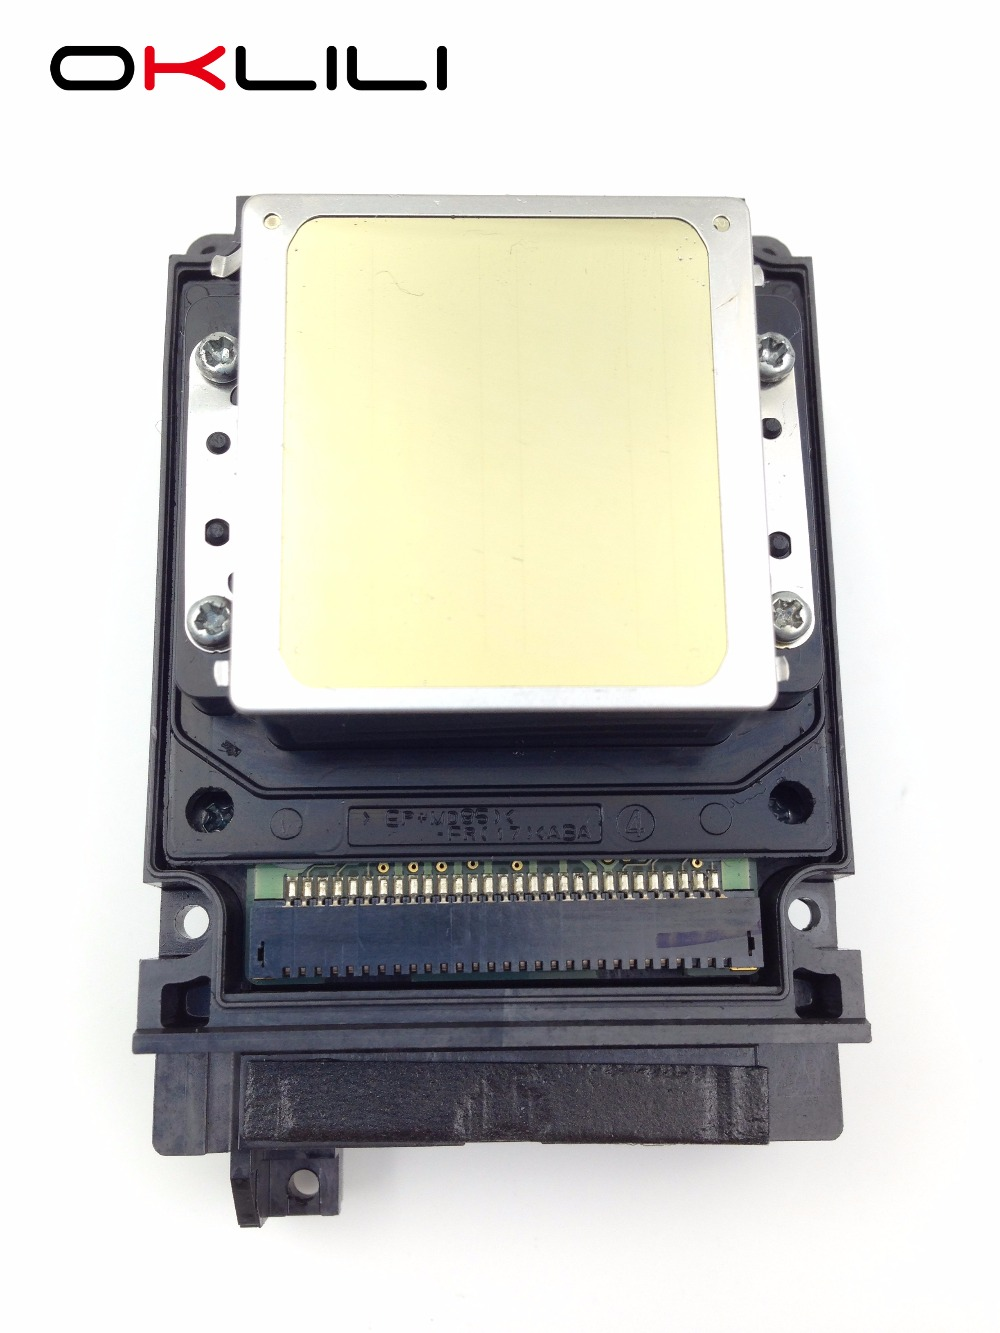 ФОТО F192040 Printhead Print Head for Epson PX800FW TX800FW PX810FW PX700W TX700W PX710W TX710W PX720WD PX820FWD PX830FWD PX730WD